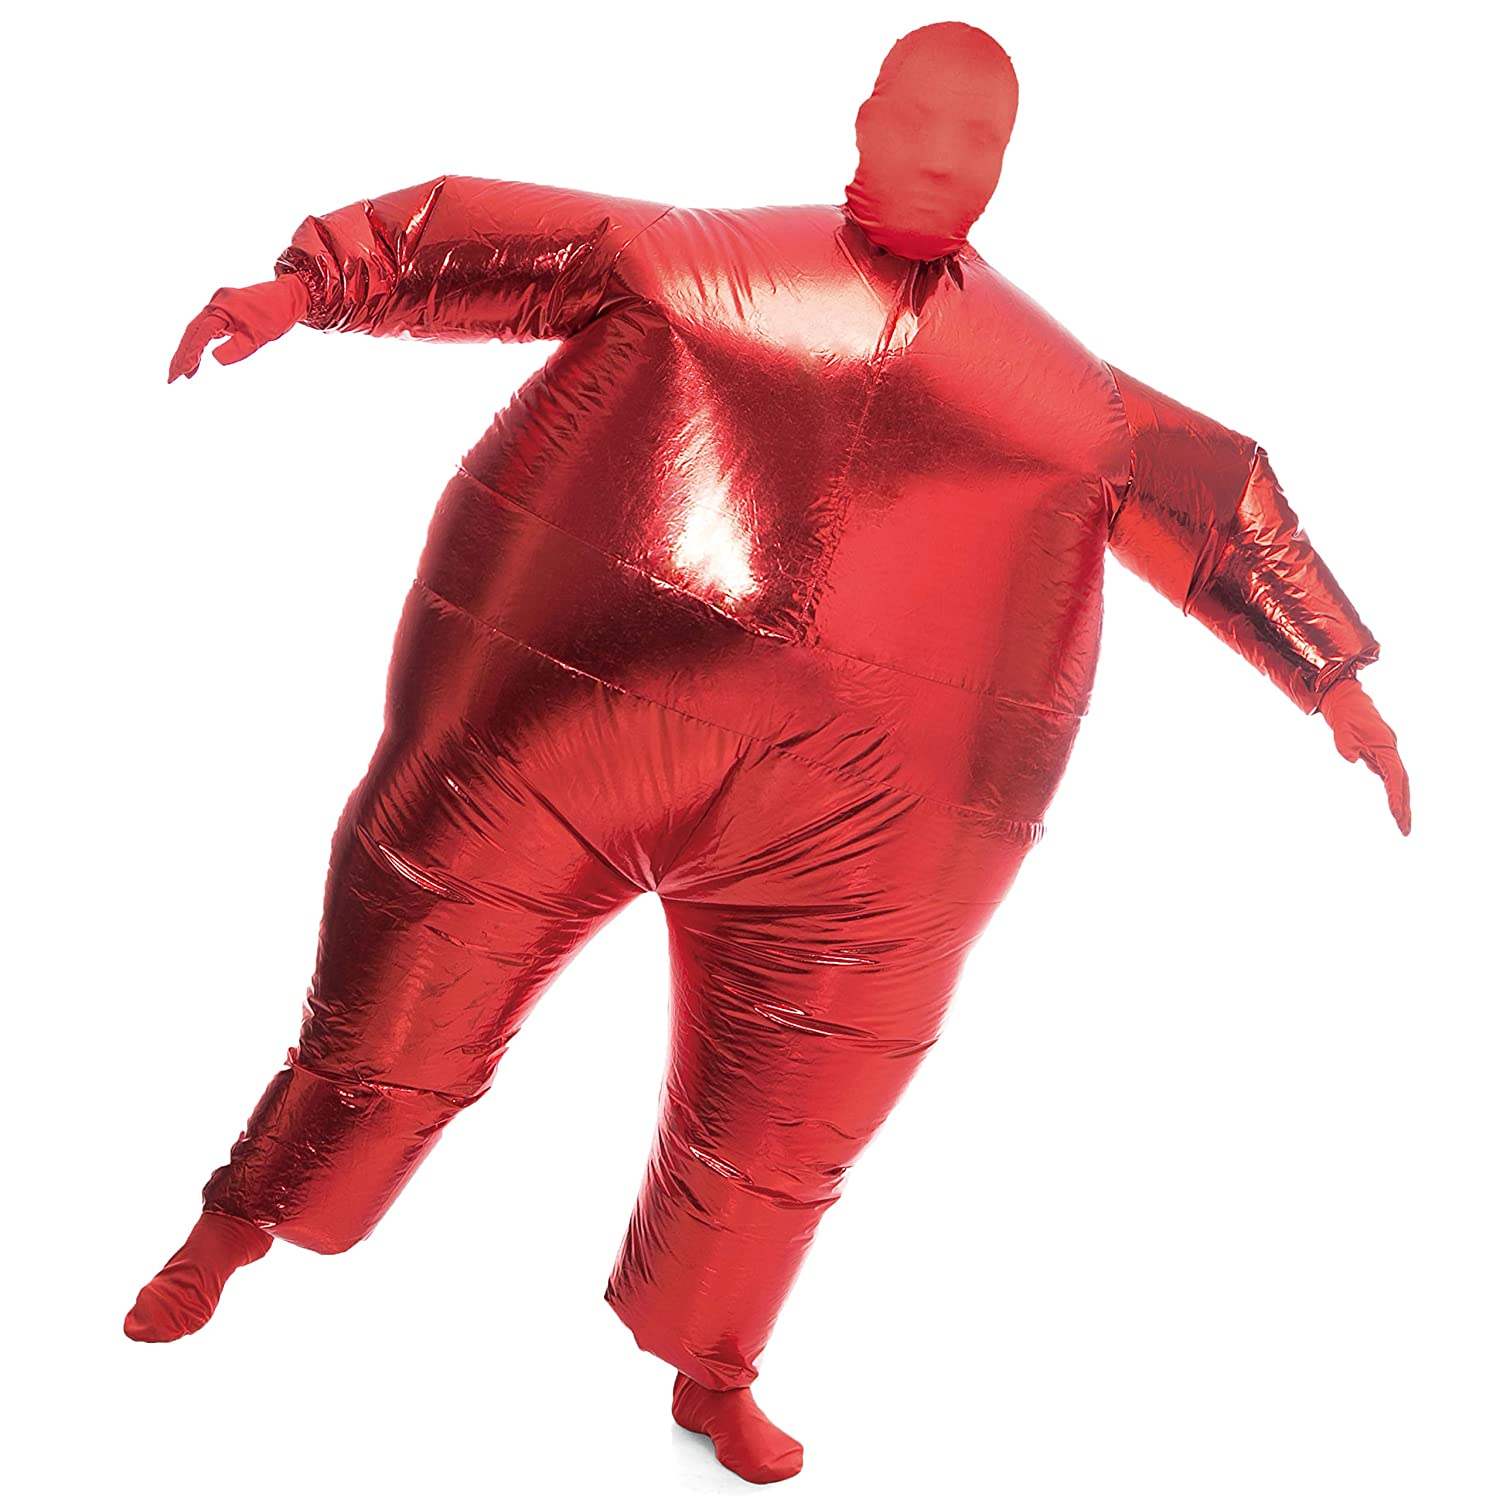 Spooktacular Creations Inflatable Costume Full Body Suit Halloween Costume Metallic Shiny Adult Size